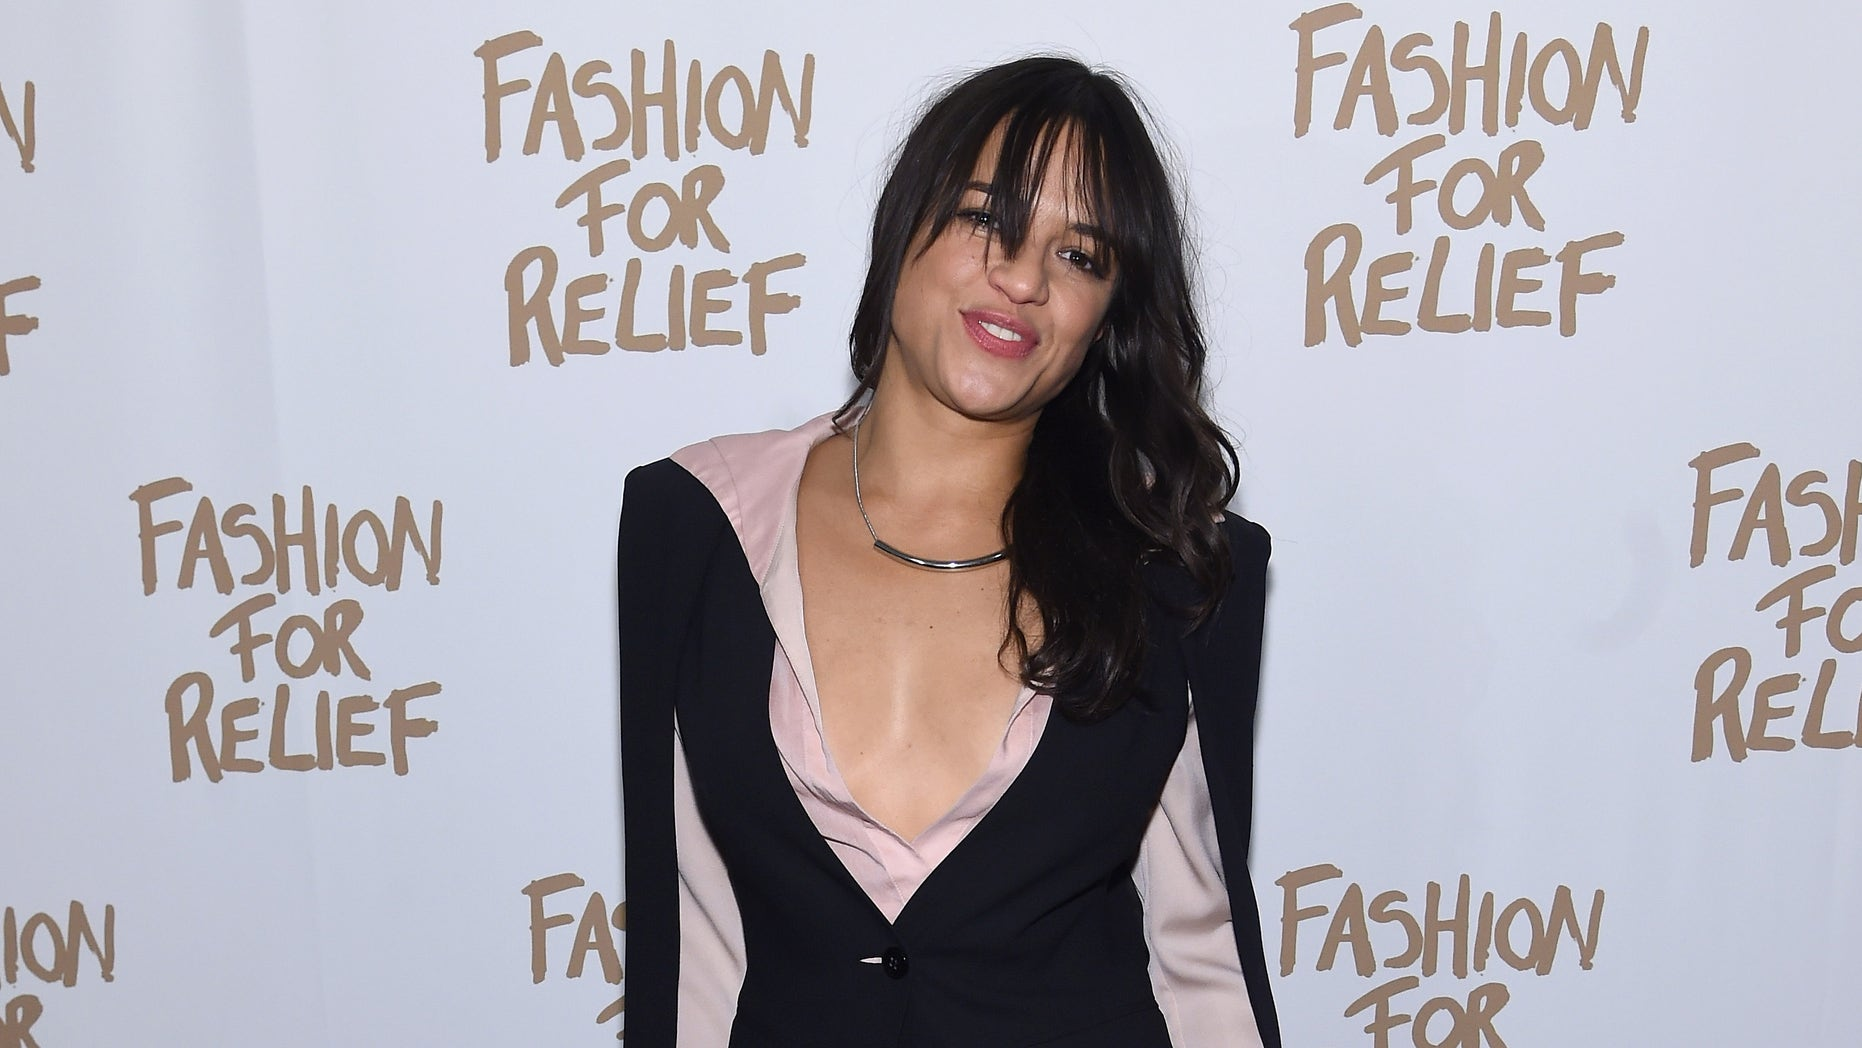 NEW YORK, NY - FEBRUARY 14:  Actress Michelle Rodriguez attends Naomi Campbell's Fashion For Relief Charity Fashion Show during Mercedes-Benz Fashion Week Fall 2015 at The Theatre at Lincoln Center on February 14, 2015 in New York City.  (Photo by Jamie McCarthy/Getty Images For Fashion For Relief)